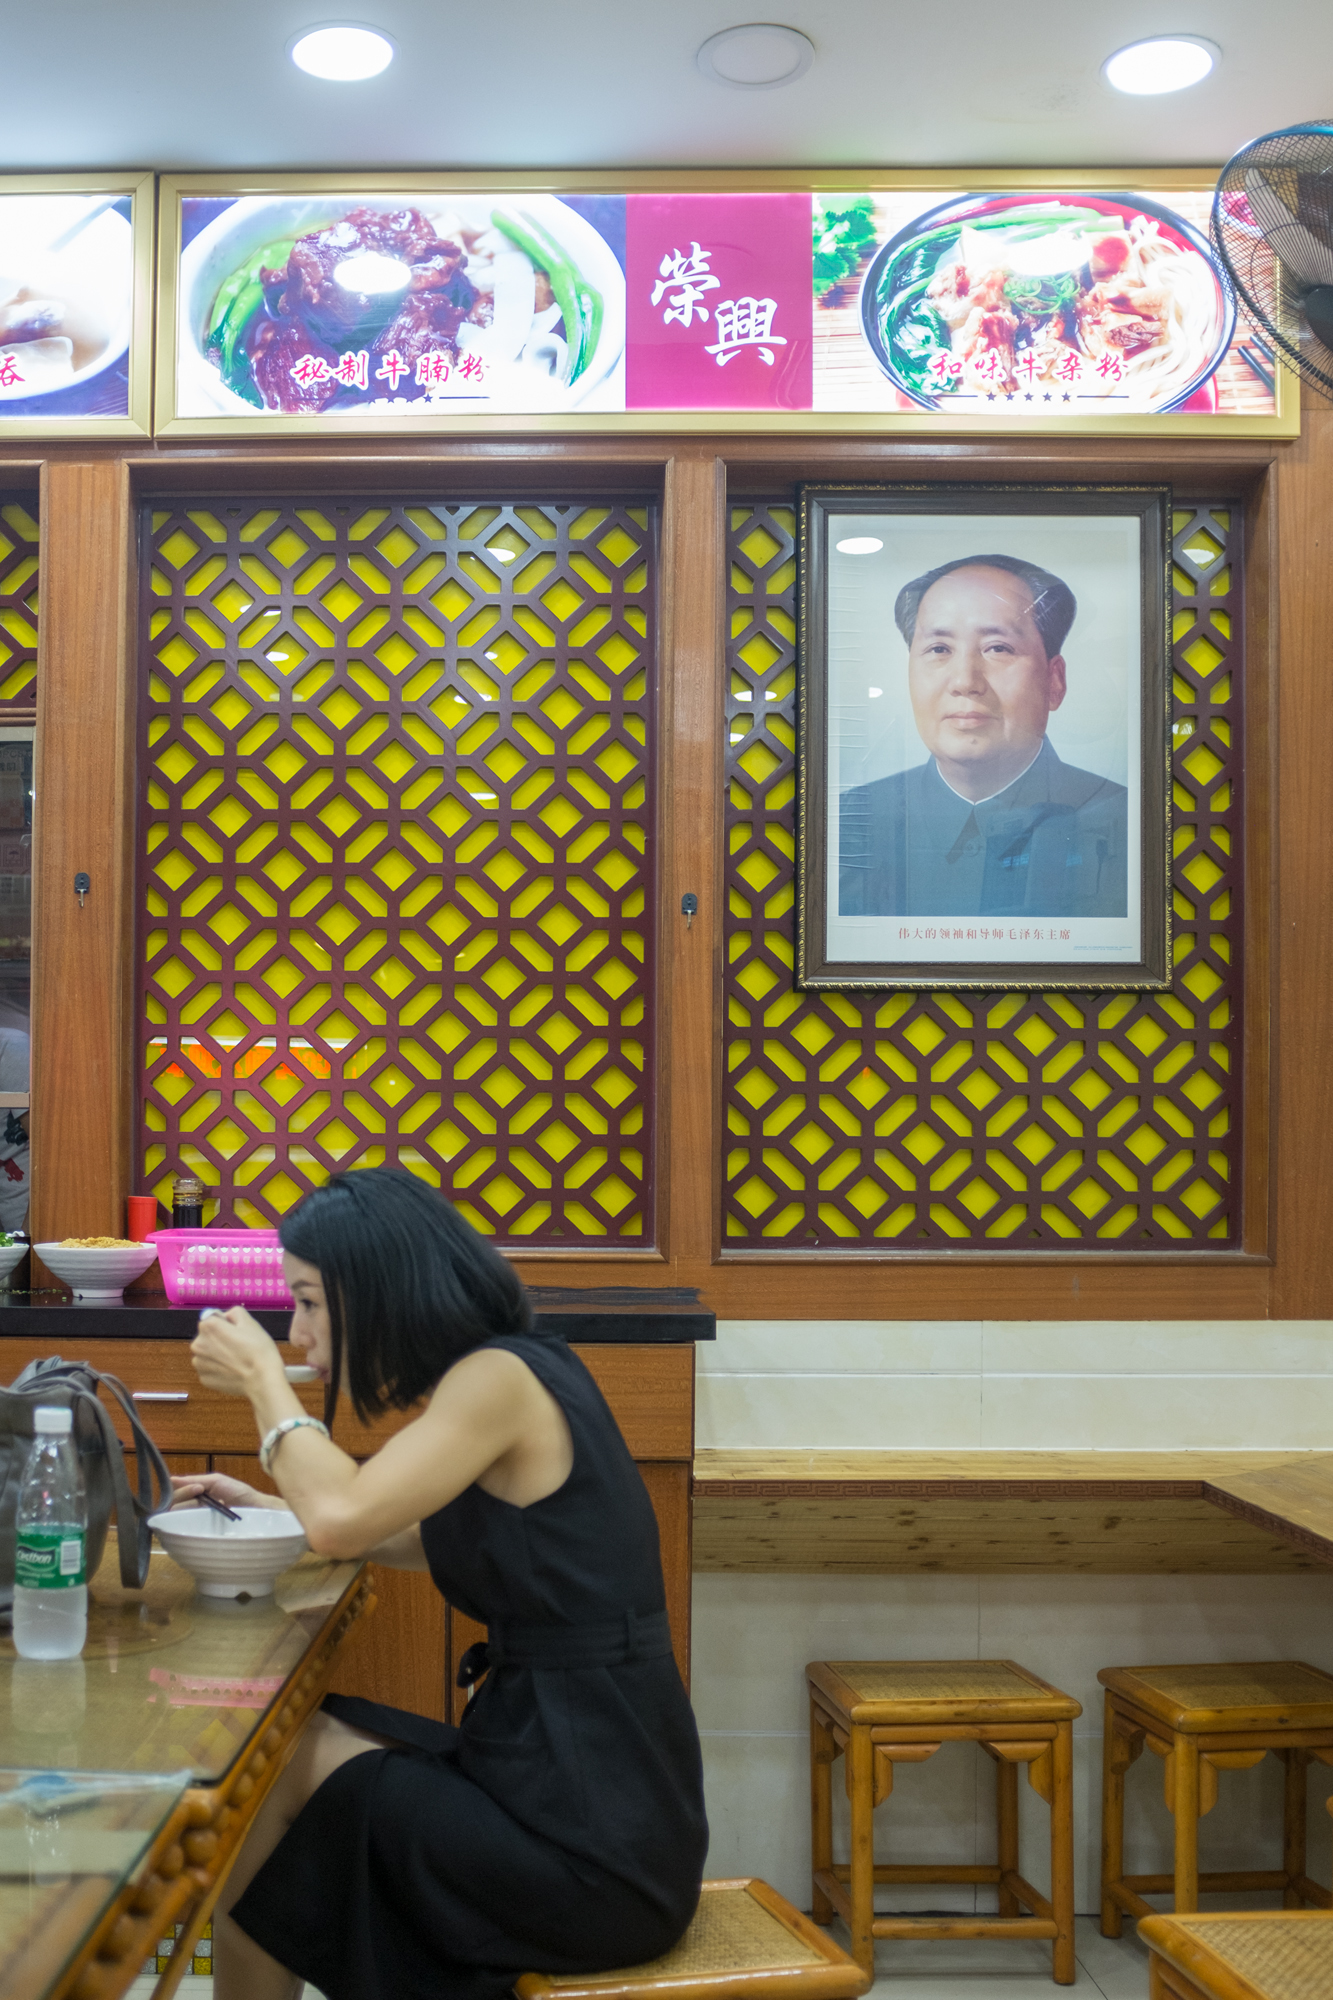 Chairman Mao overseeing noodle shop